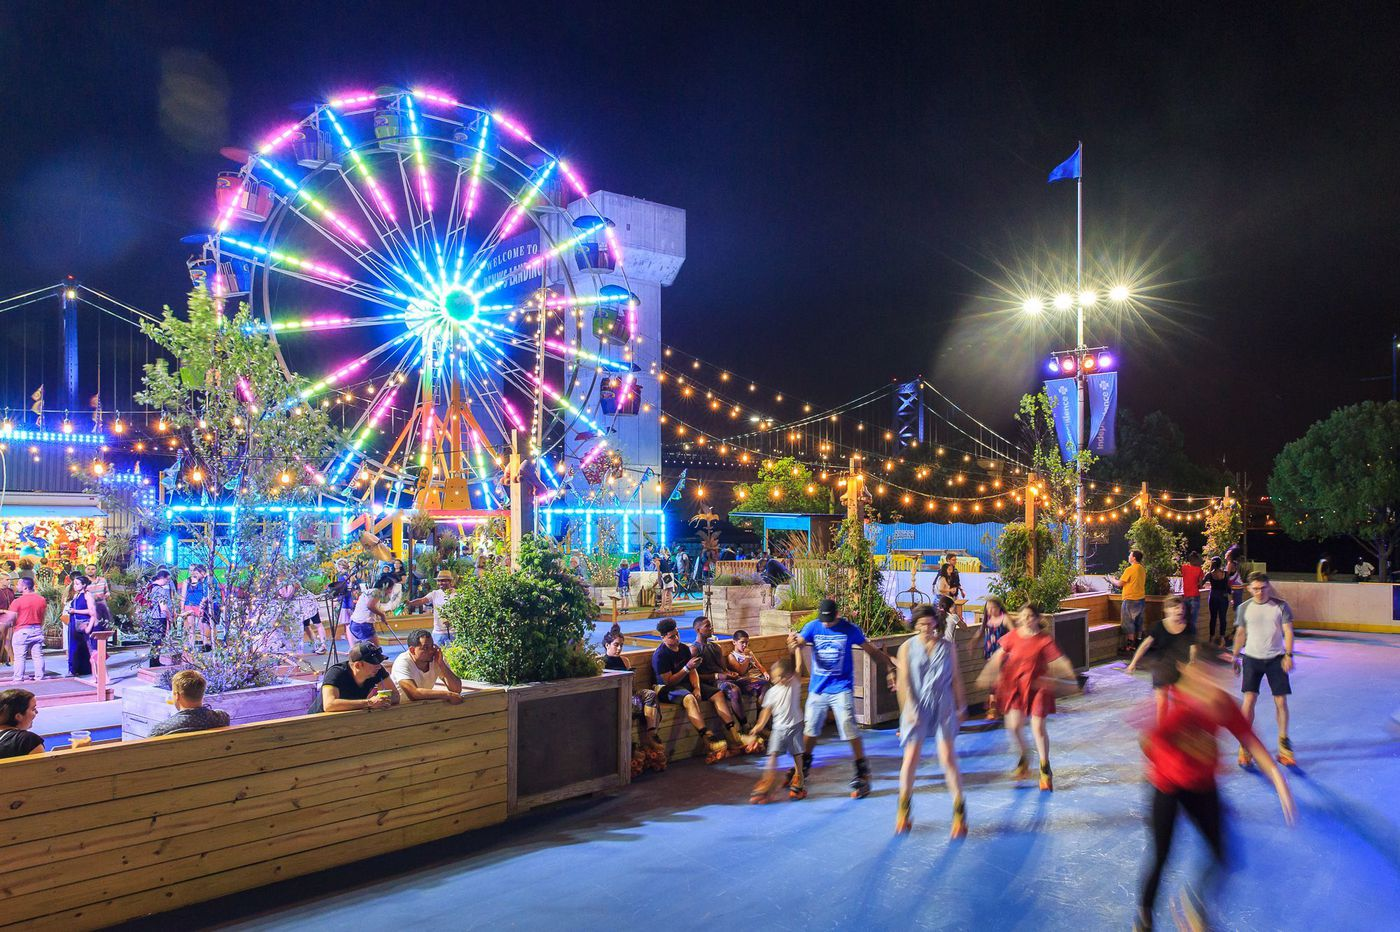 Here's the summer schedule for Cherry Street Pier, Spruce Street Harbor Park, Penn's Landing, and more